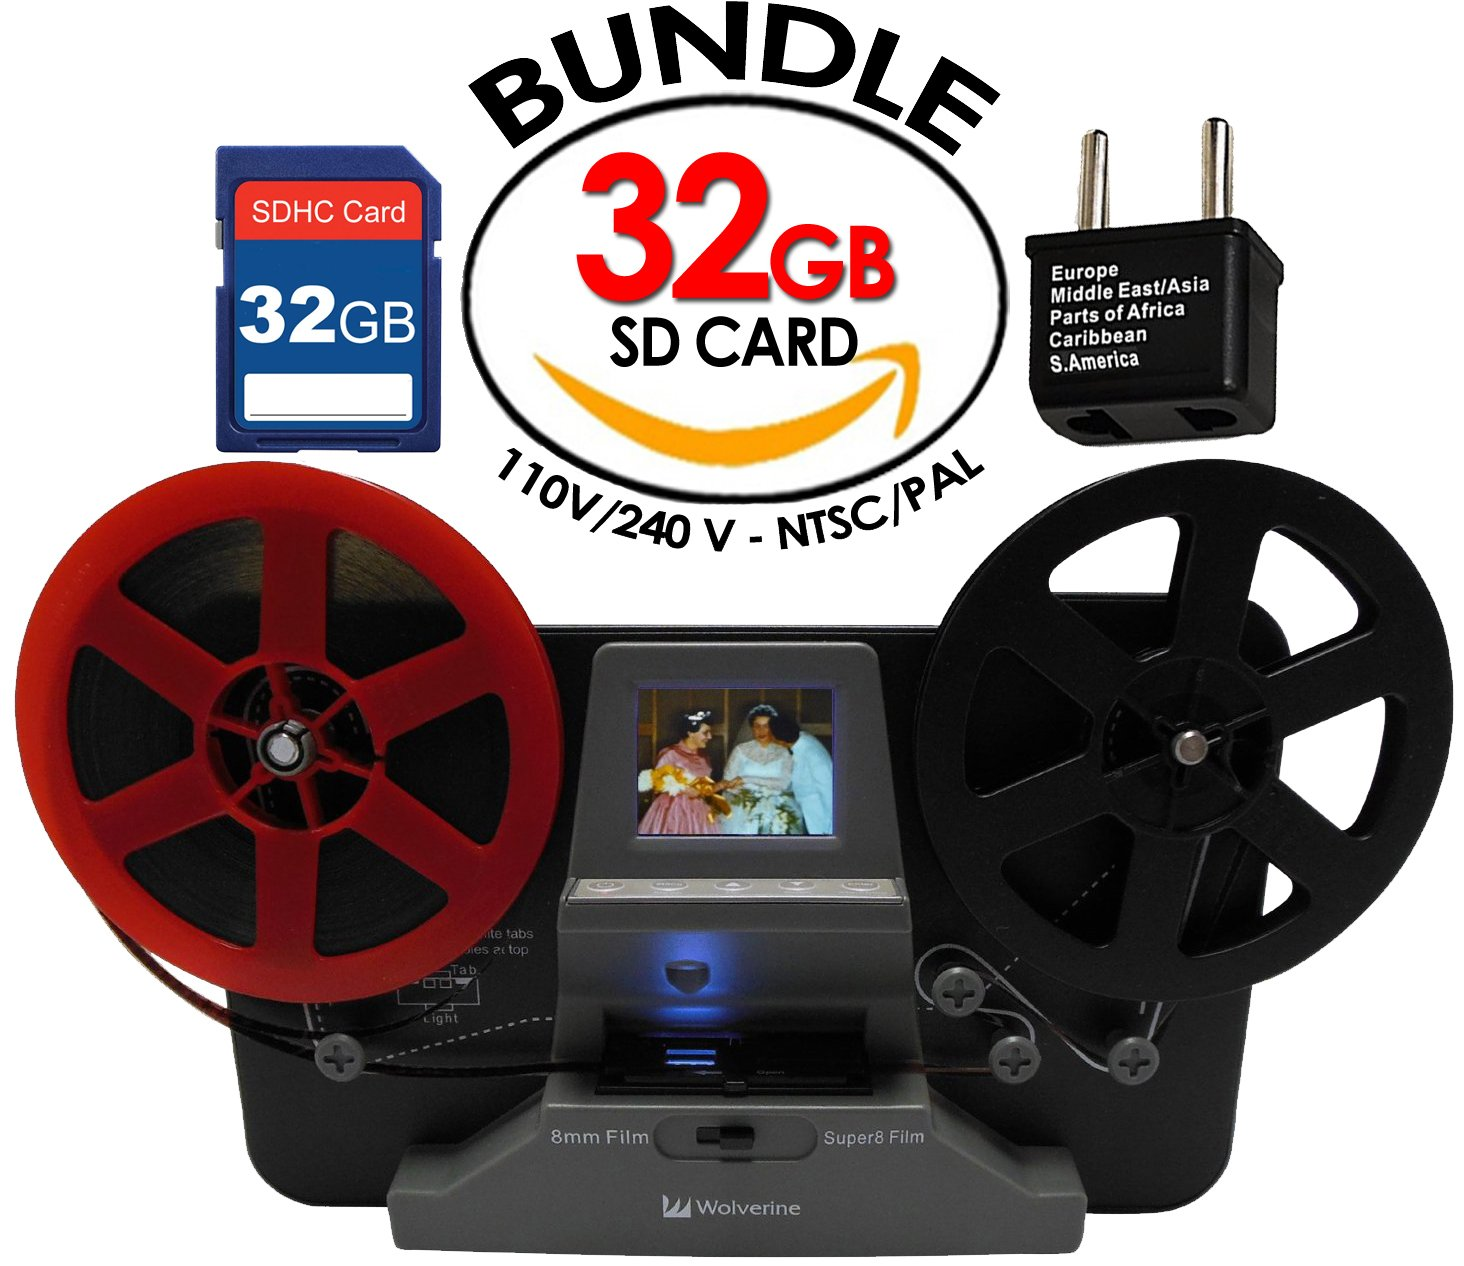 Wolverine 8 mm & Super 8 Reels Movie Digitizer w/ 2.4'' LCD (Film2Digital MovieMaker) Includes 32GB SD Memory Card & Worldwide 100-240V AC Adapter & International Two-Prong Round Pin Plug Adapter